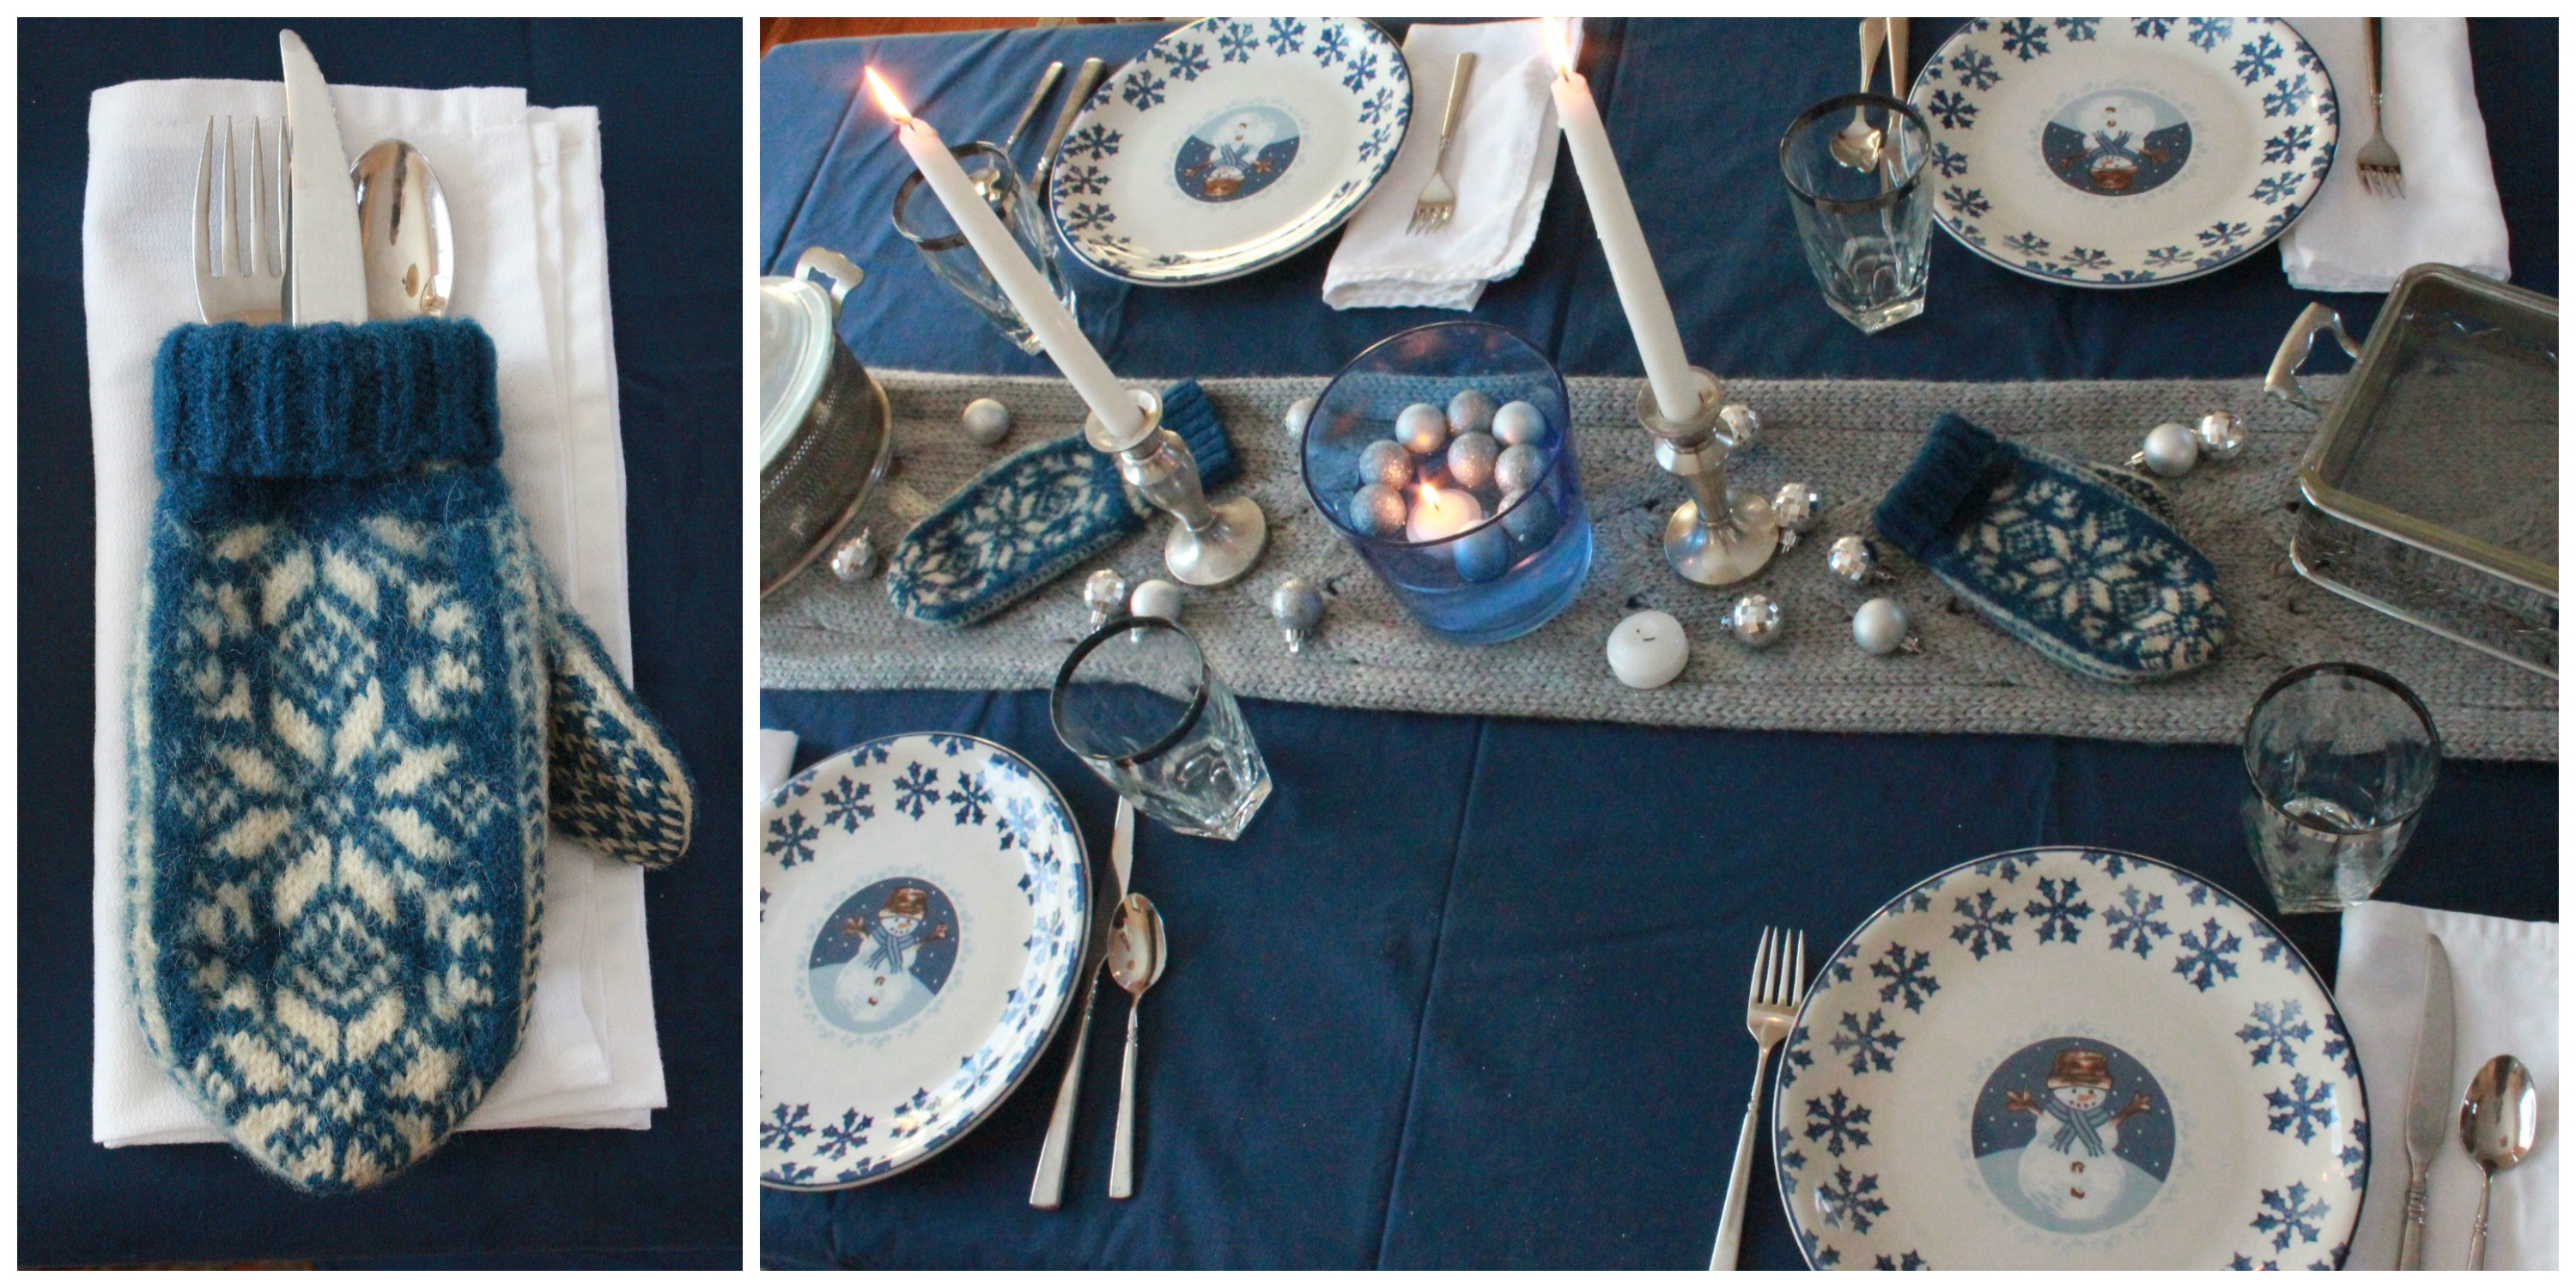 Creating Festive Winter Tablescapes on a Thrift Store Budget